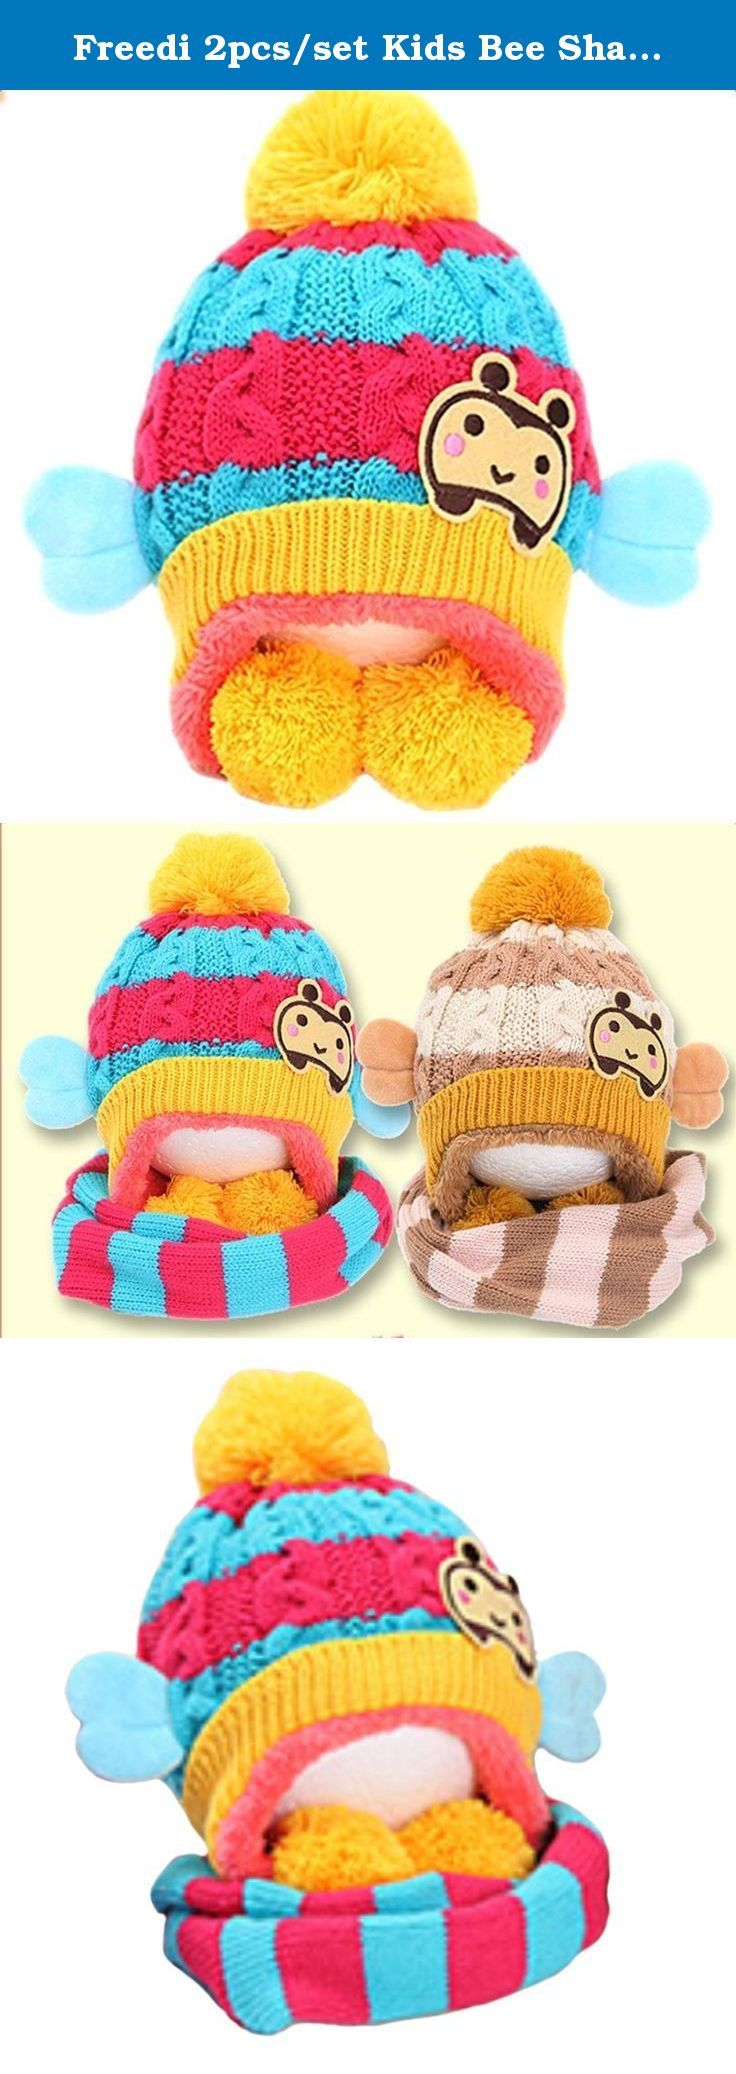 Freedi 2pcs/set Kids Bee Shape Knitting Wool Hat and Scarf Set Winter for Baby Yellow. Soft and light weight scarf with dreamlike gradual colors,suitable for wearing in the winter and autumn,it goes with your baby's beautiful coat or jacket,keep your baby warm and protect your baby's neck from the wind.